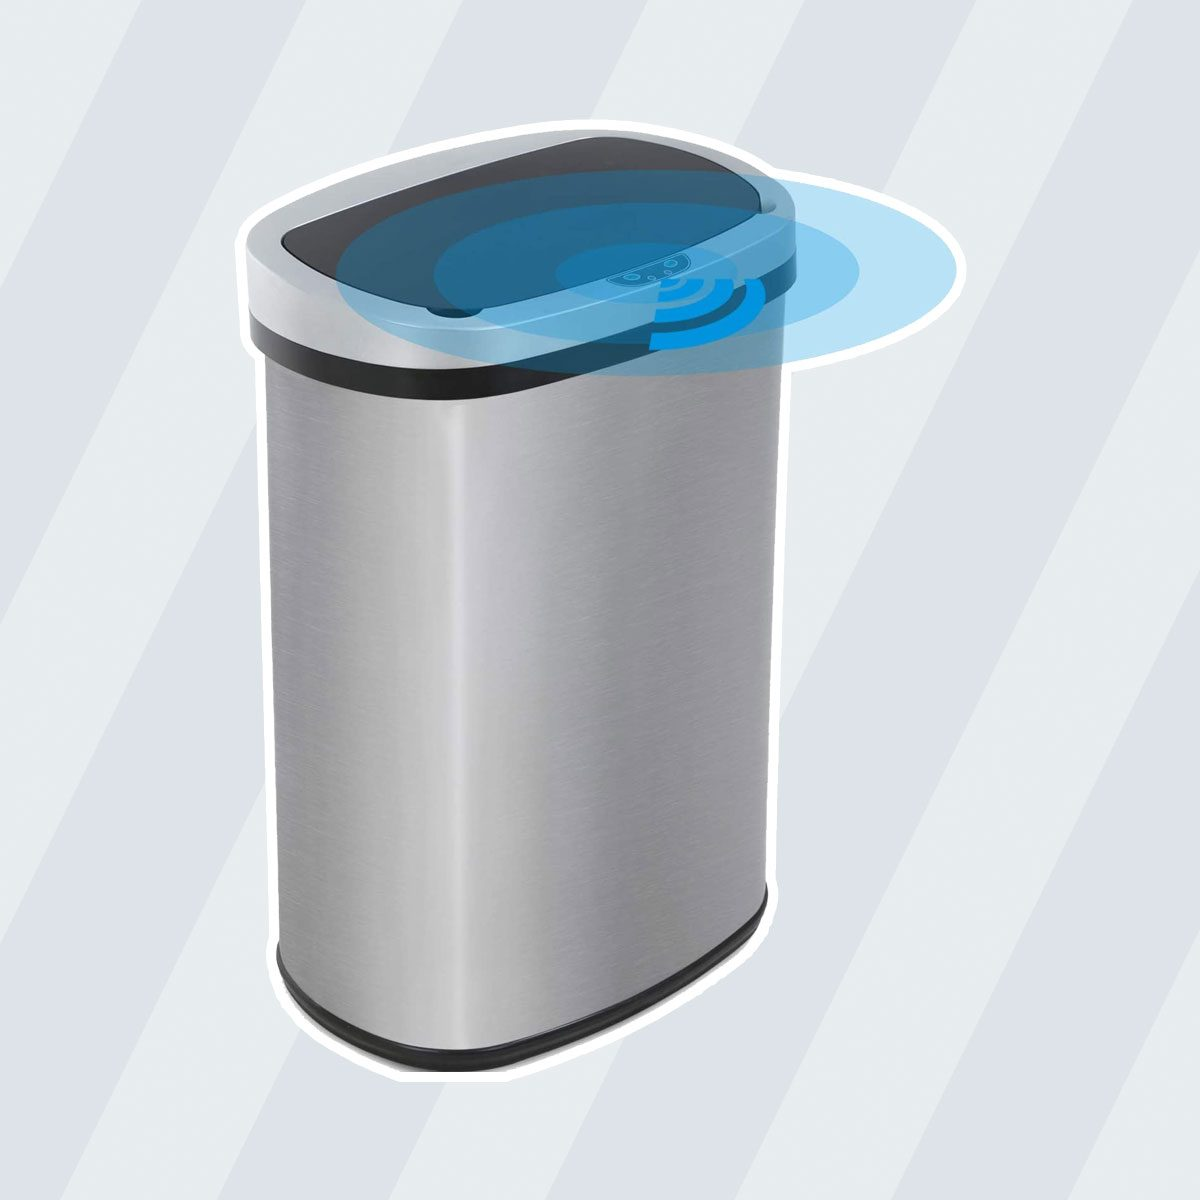 Vnewone Kitchen Trash Can Garbage 13 Gallon Waste Bin for Home Office Bedroom Stainless Steel Automatic Touch Free High-Capacity, 50 Liter